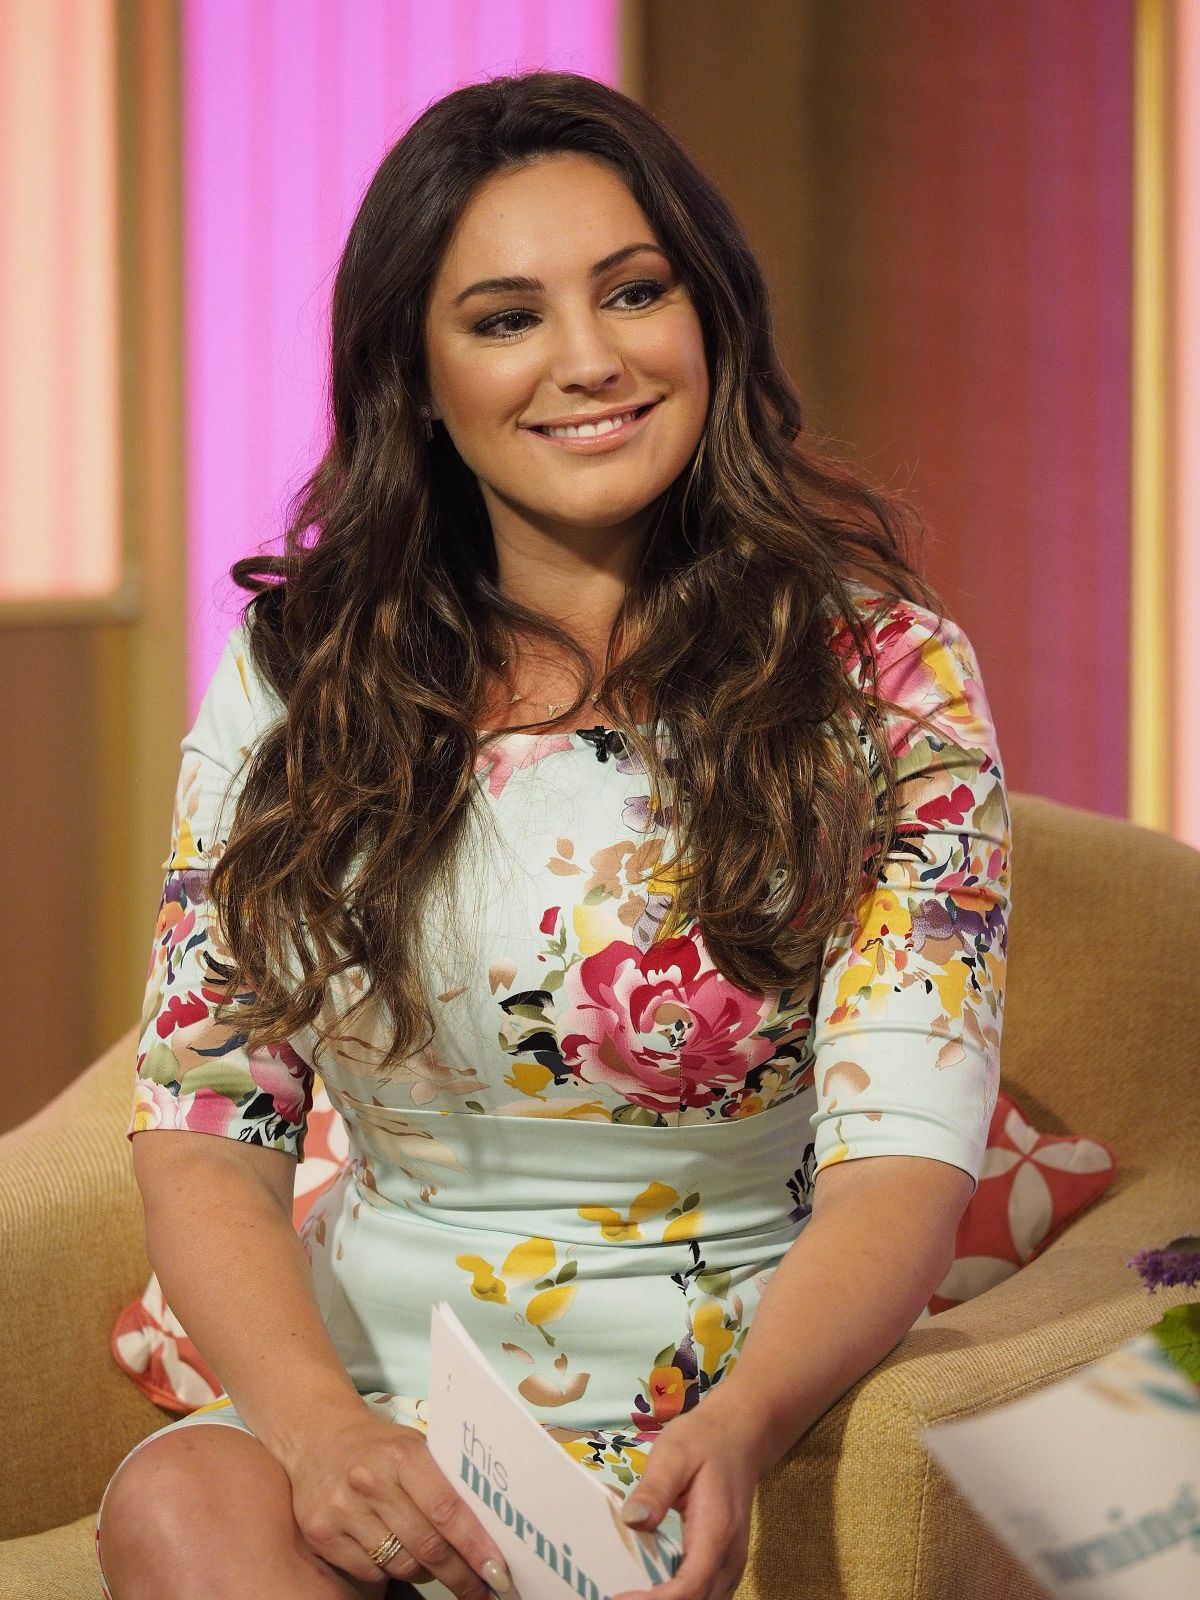 KELLY BROOK at On This Morning Show in London 08/08/2017